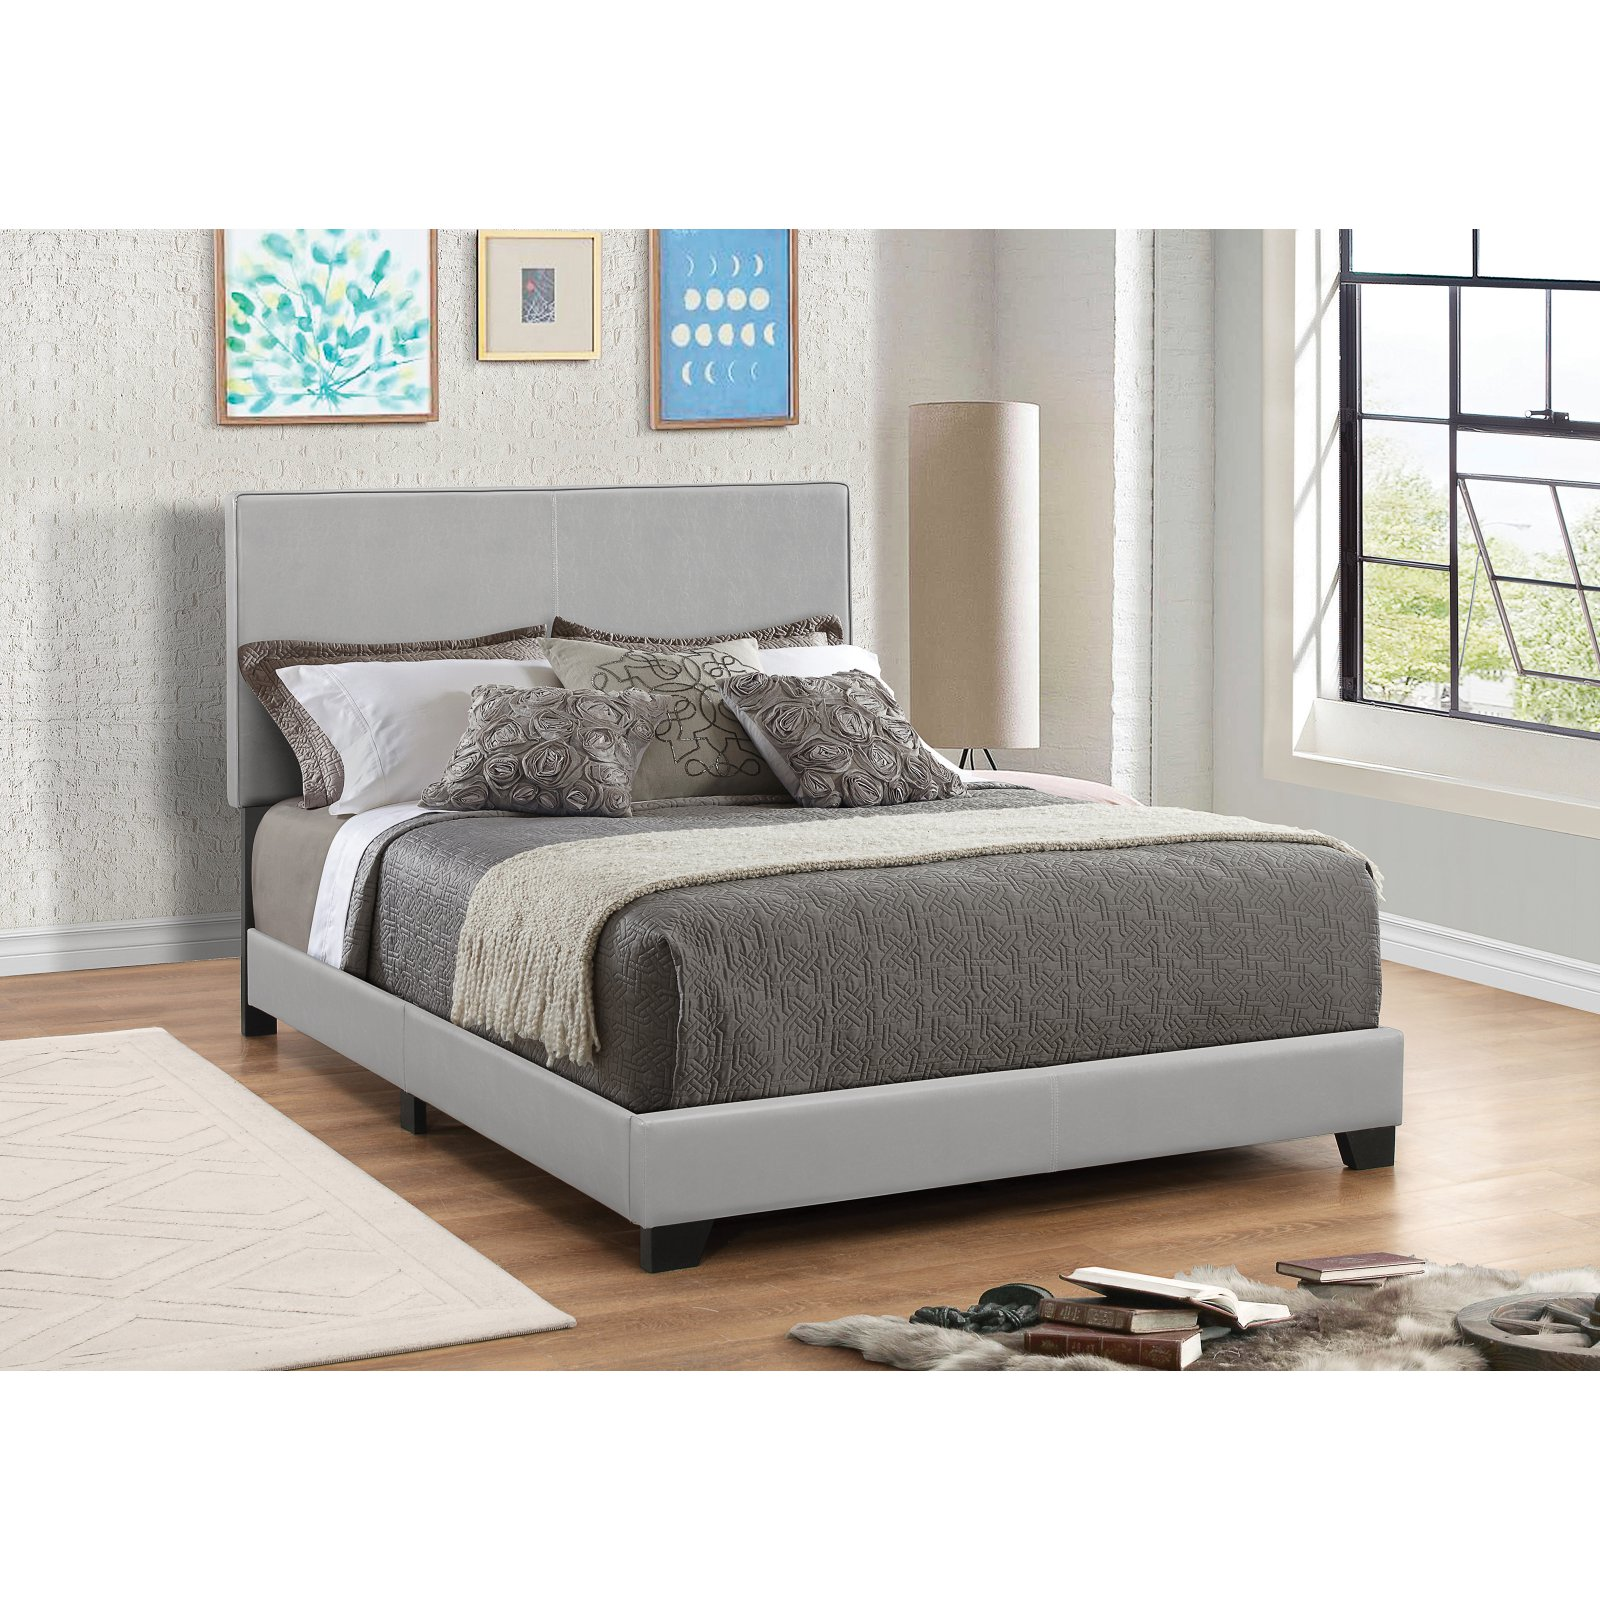 Dorian Upholstered Bed in Grey (Queen)